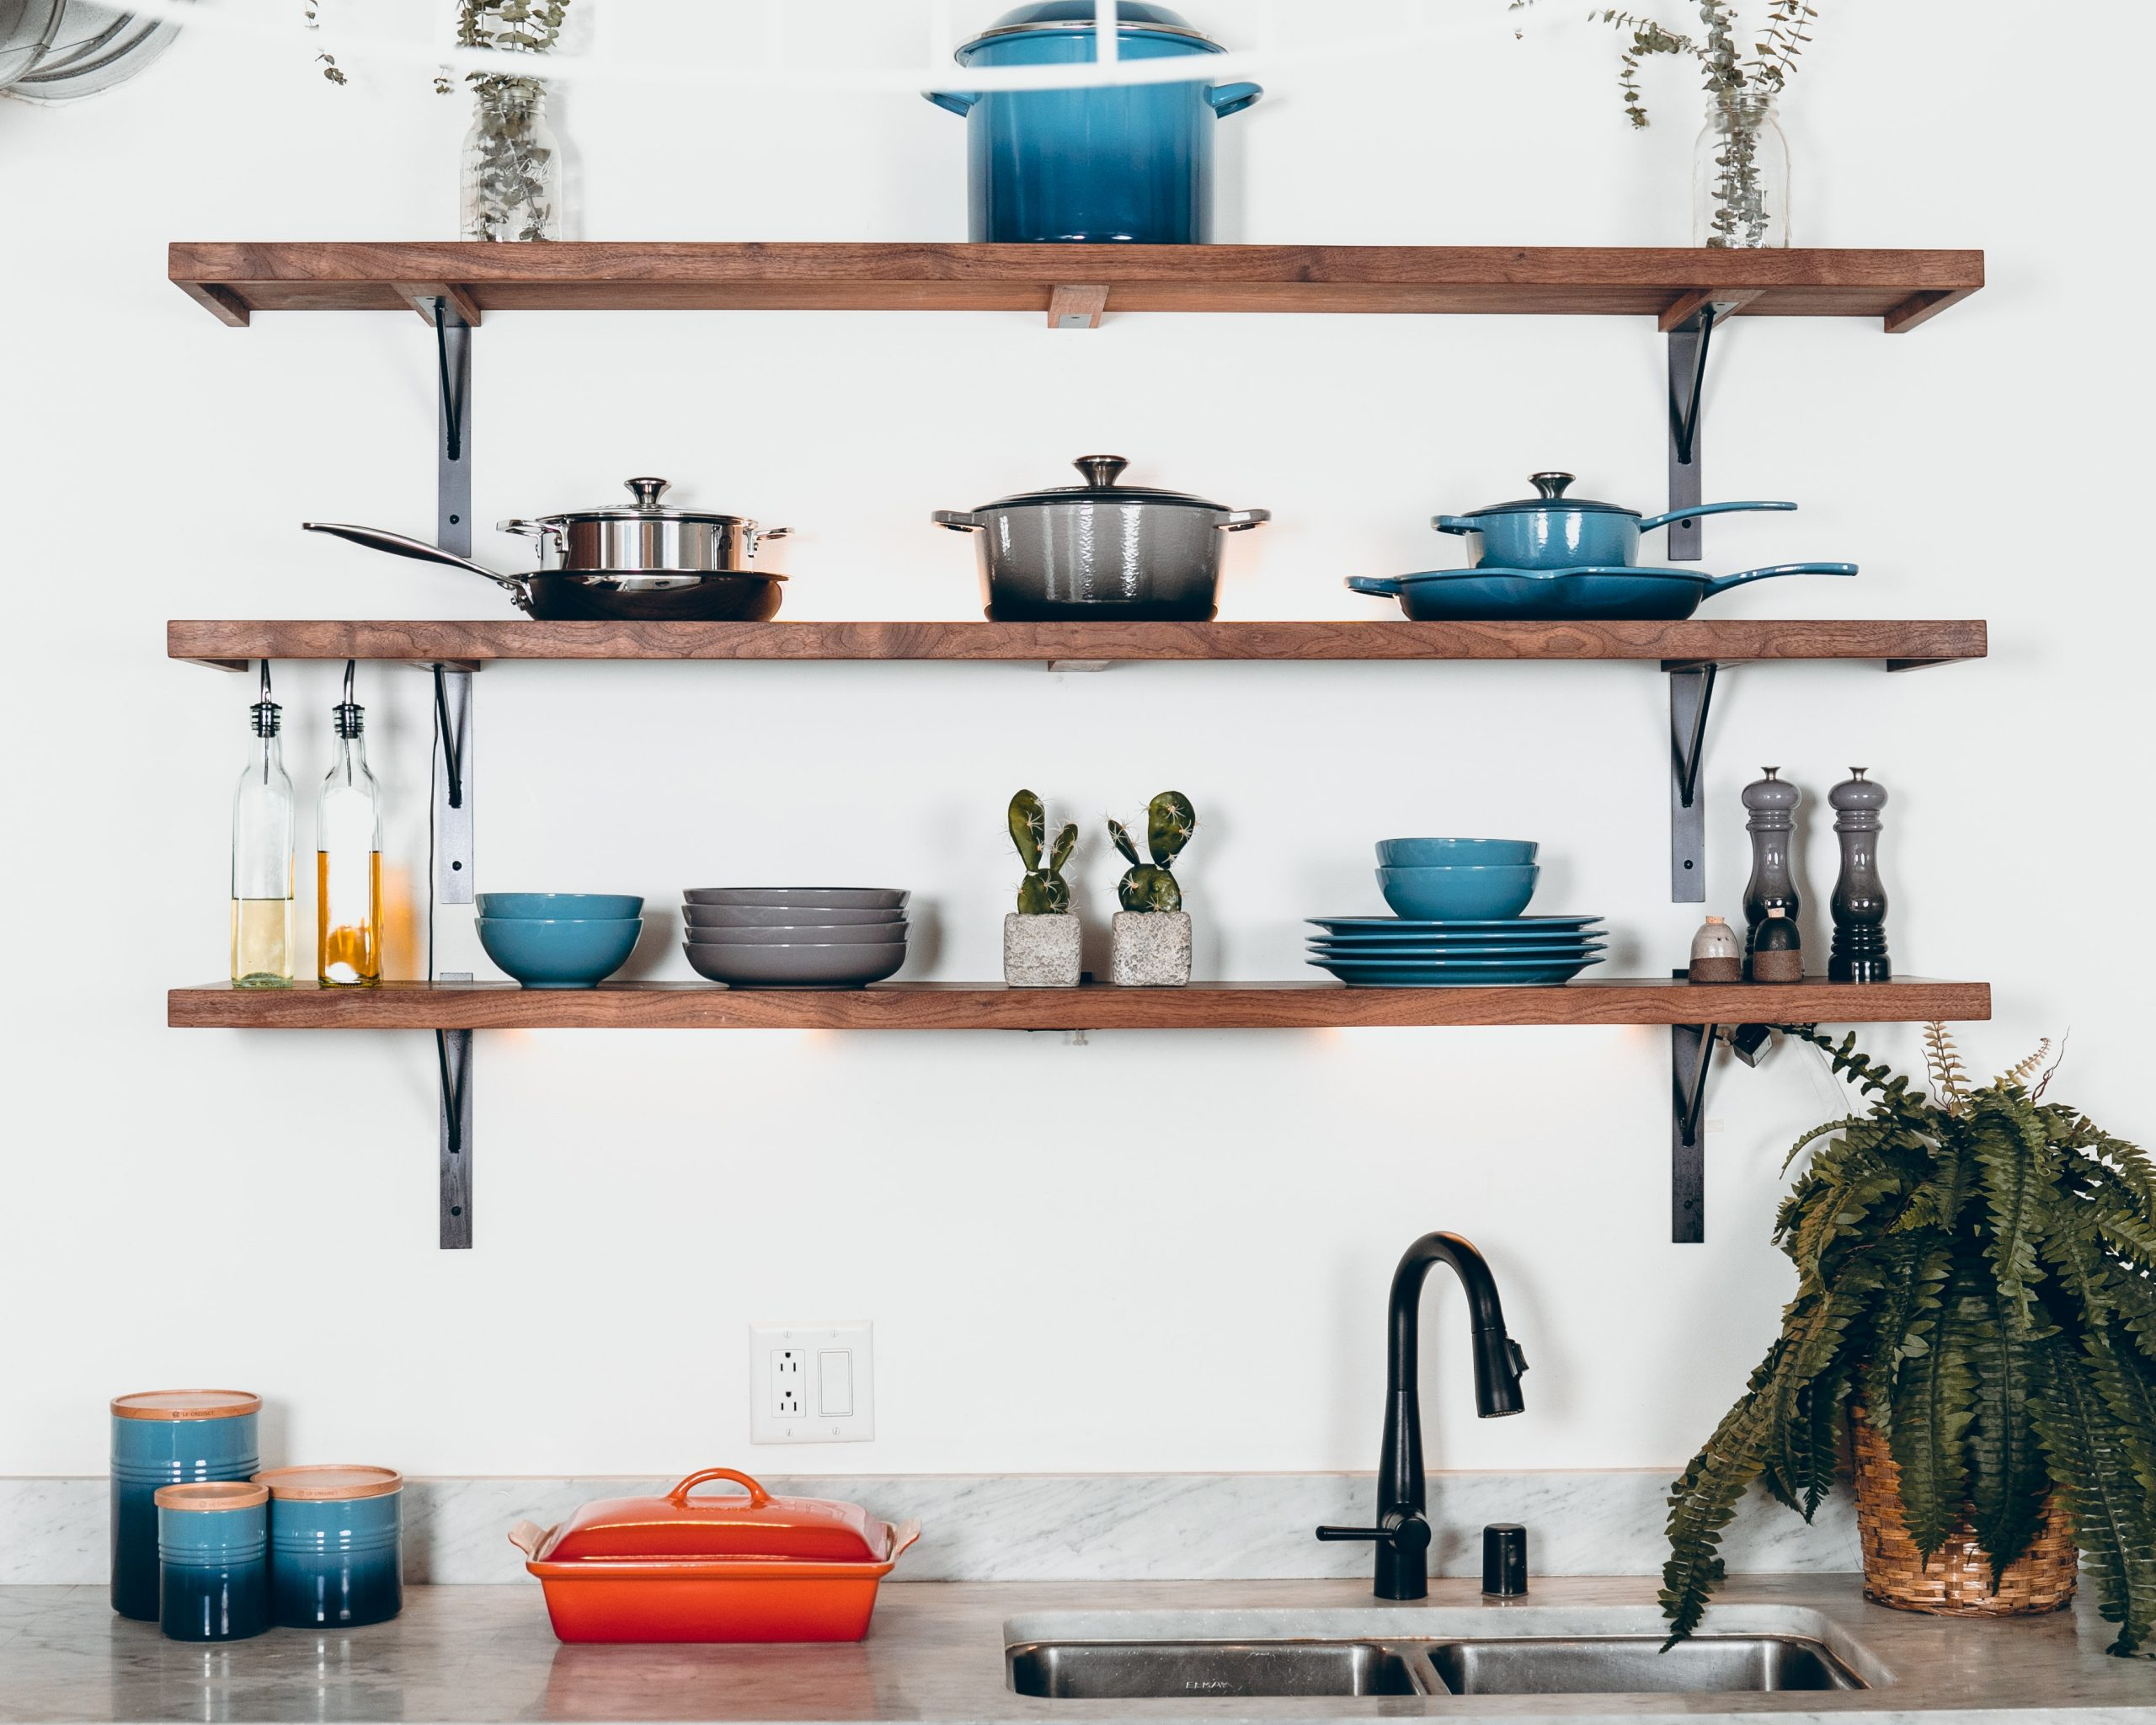 pots and pans with removable handles